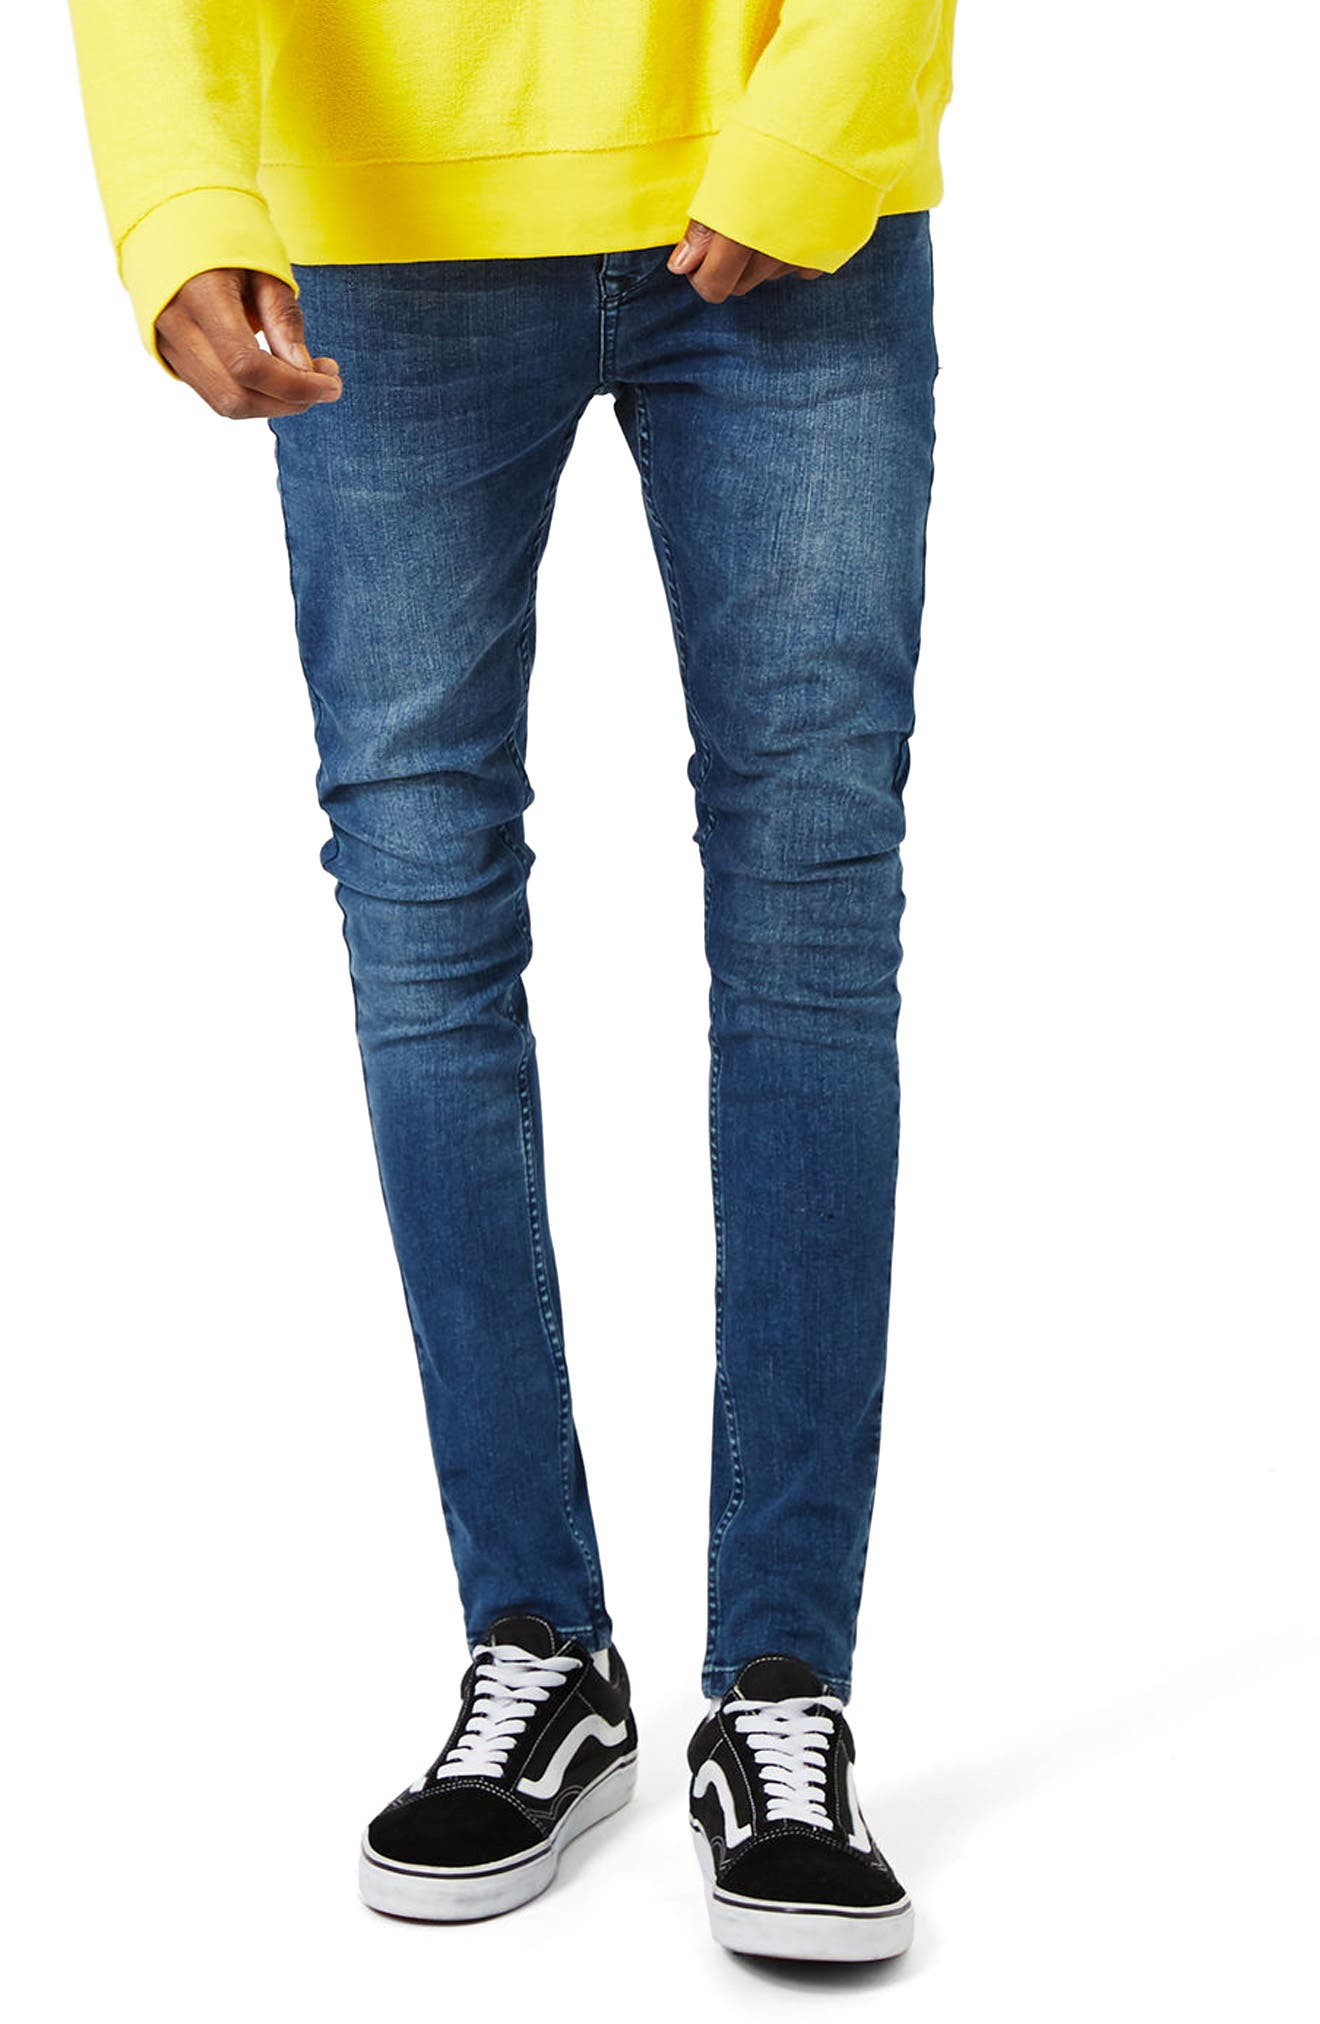 Super Spray On Skinny Fit Jeans,                             Main thumbnail 1, color,                             400